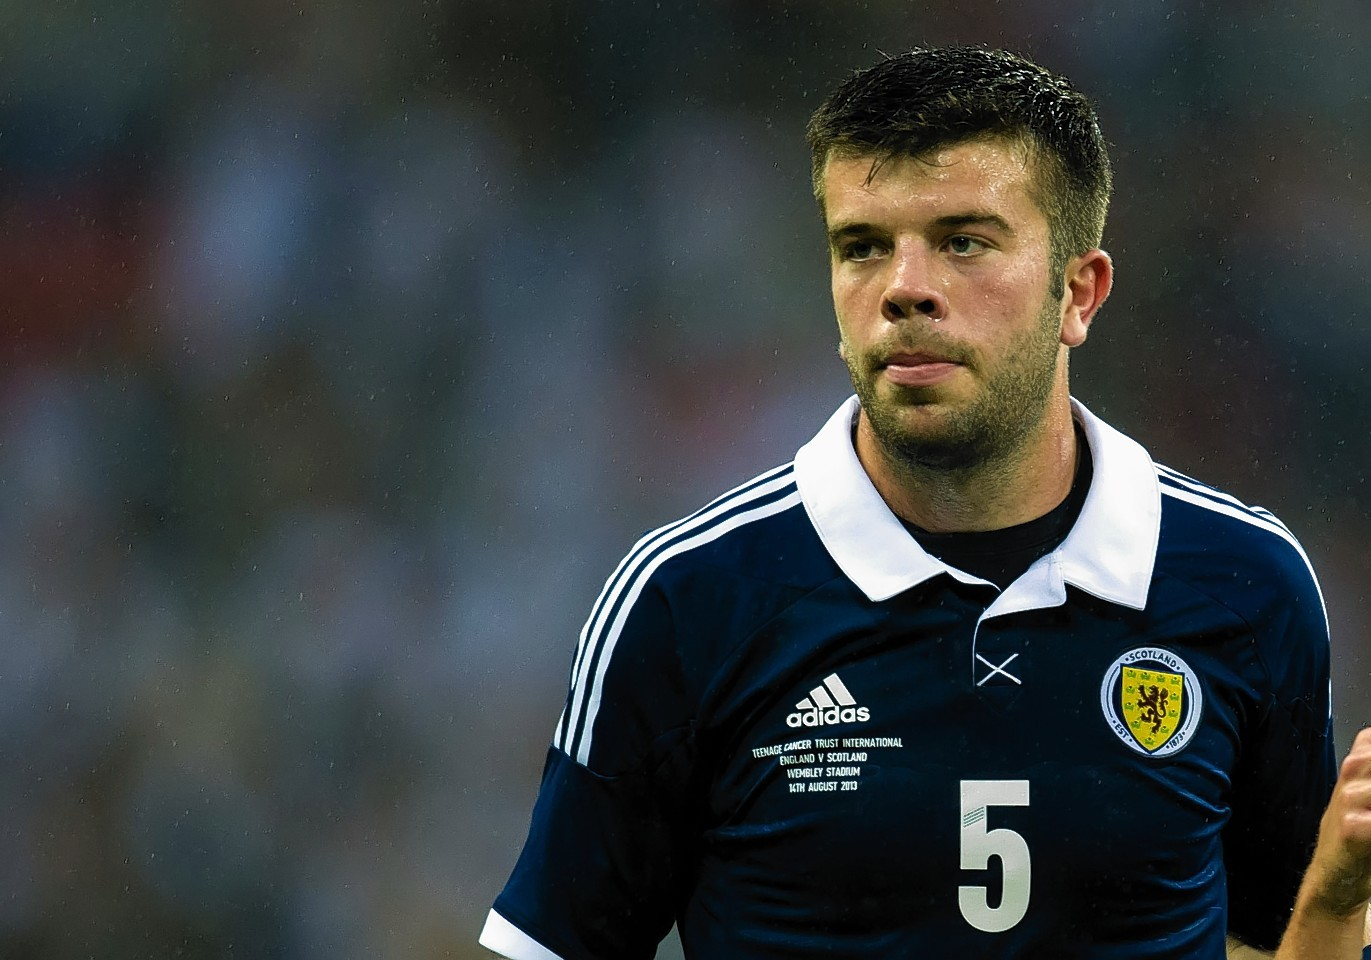 Blackburn captain Grant Haley is relishing playing for Scotland